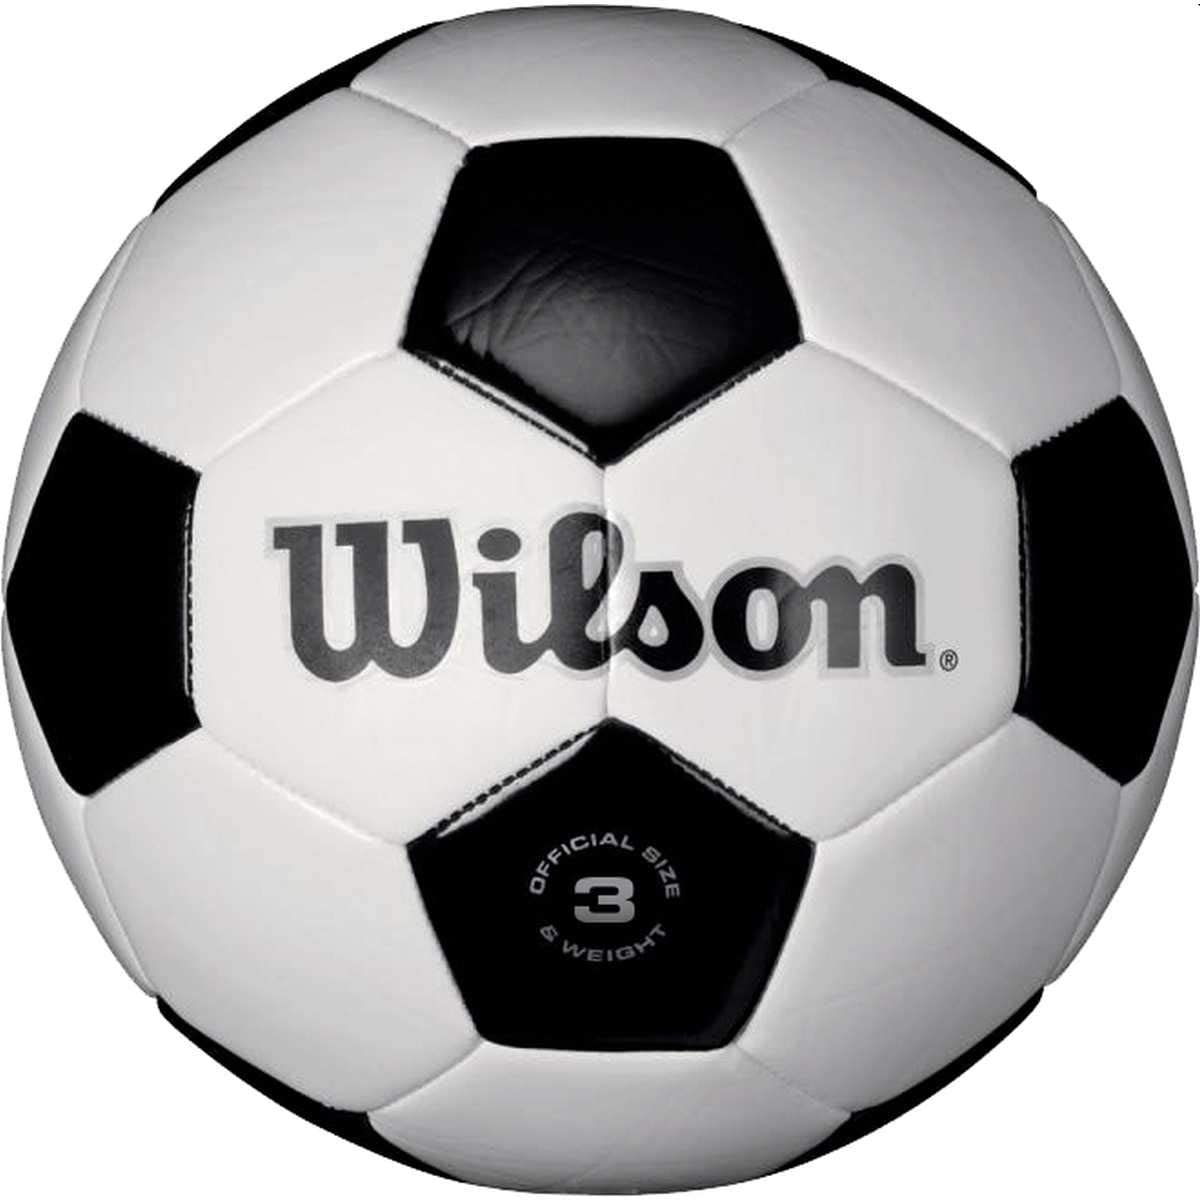 Wilson Traditional Soccer Ball : Sports & Outdoors